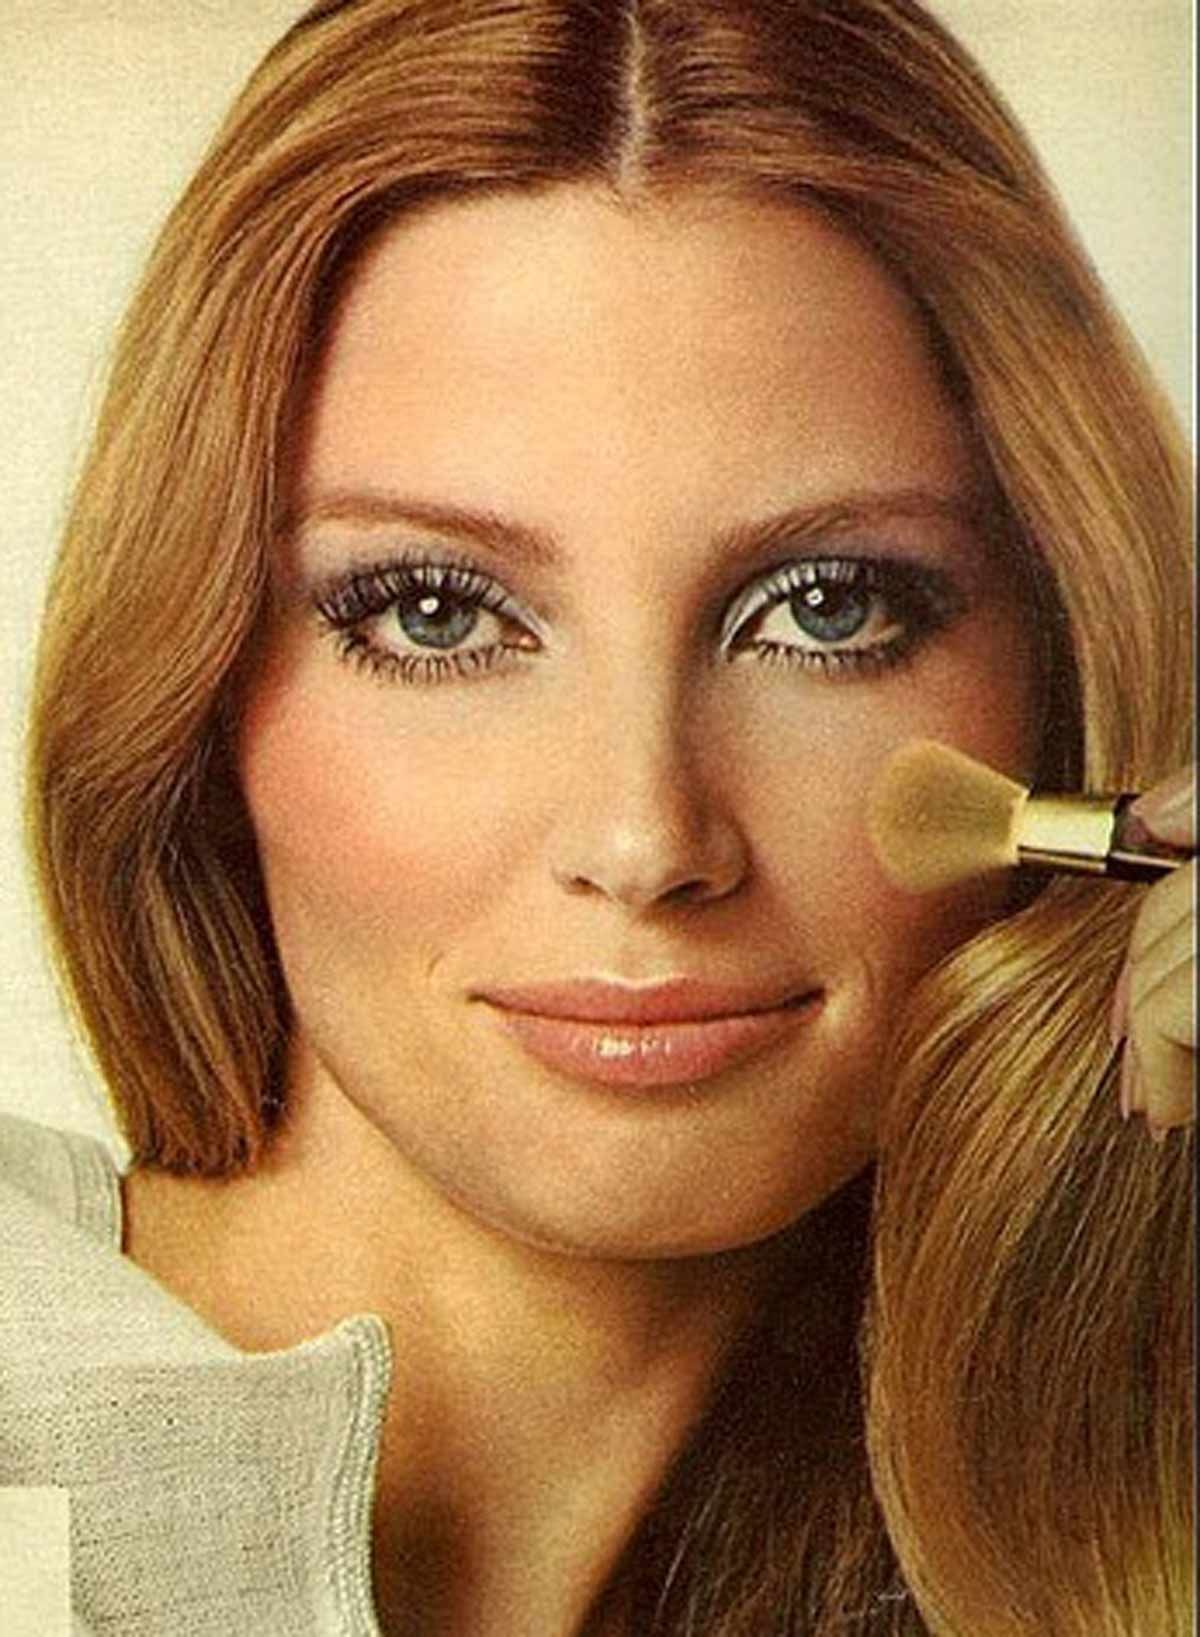 The-1970s-Face---Revlon Blush | 1970s Makeup | Pinterest ...